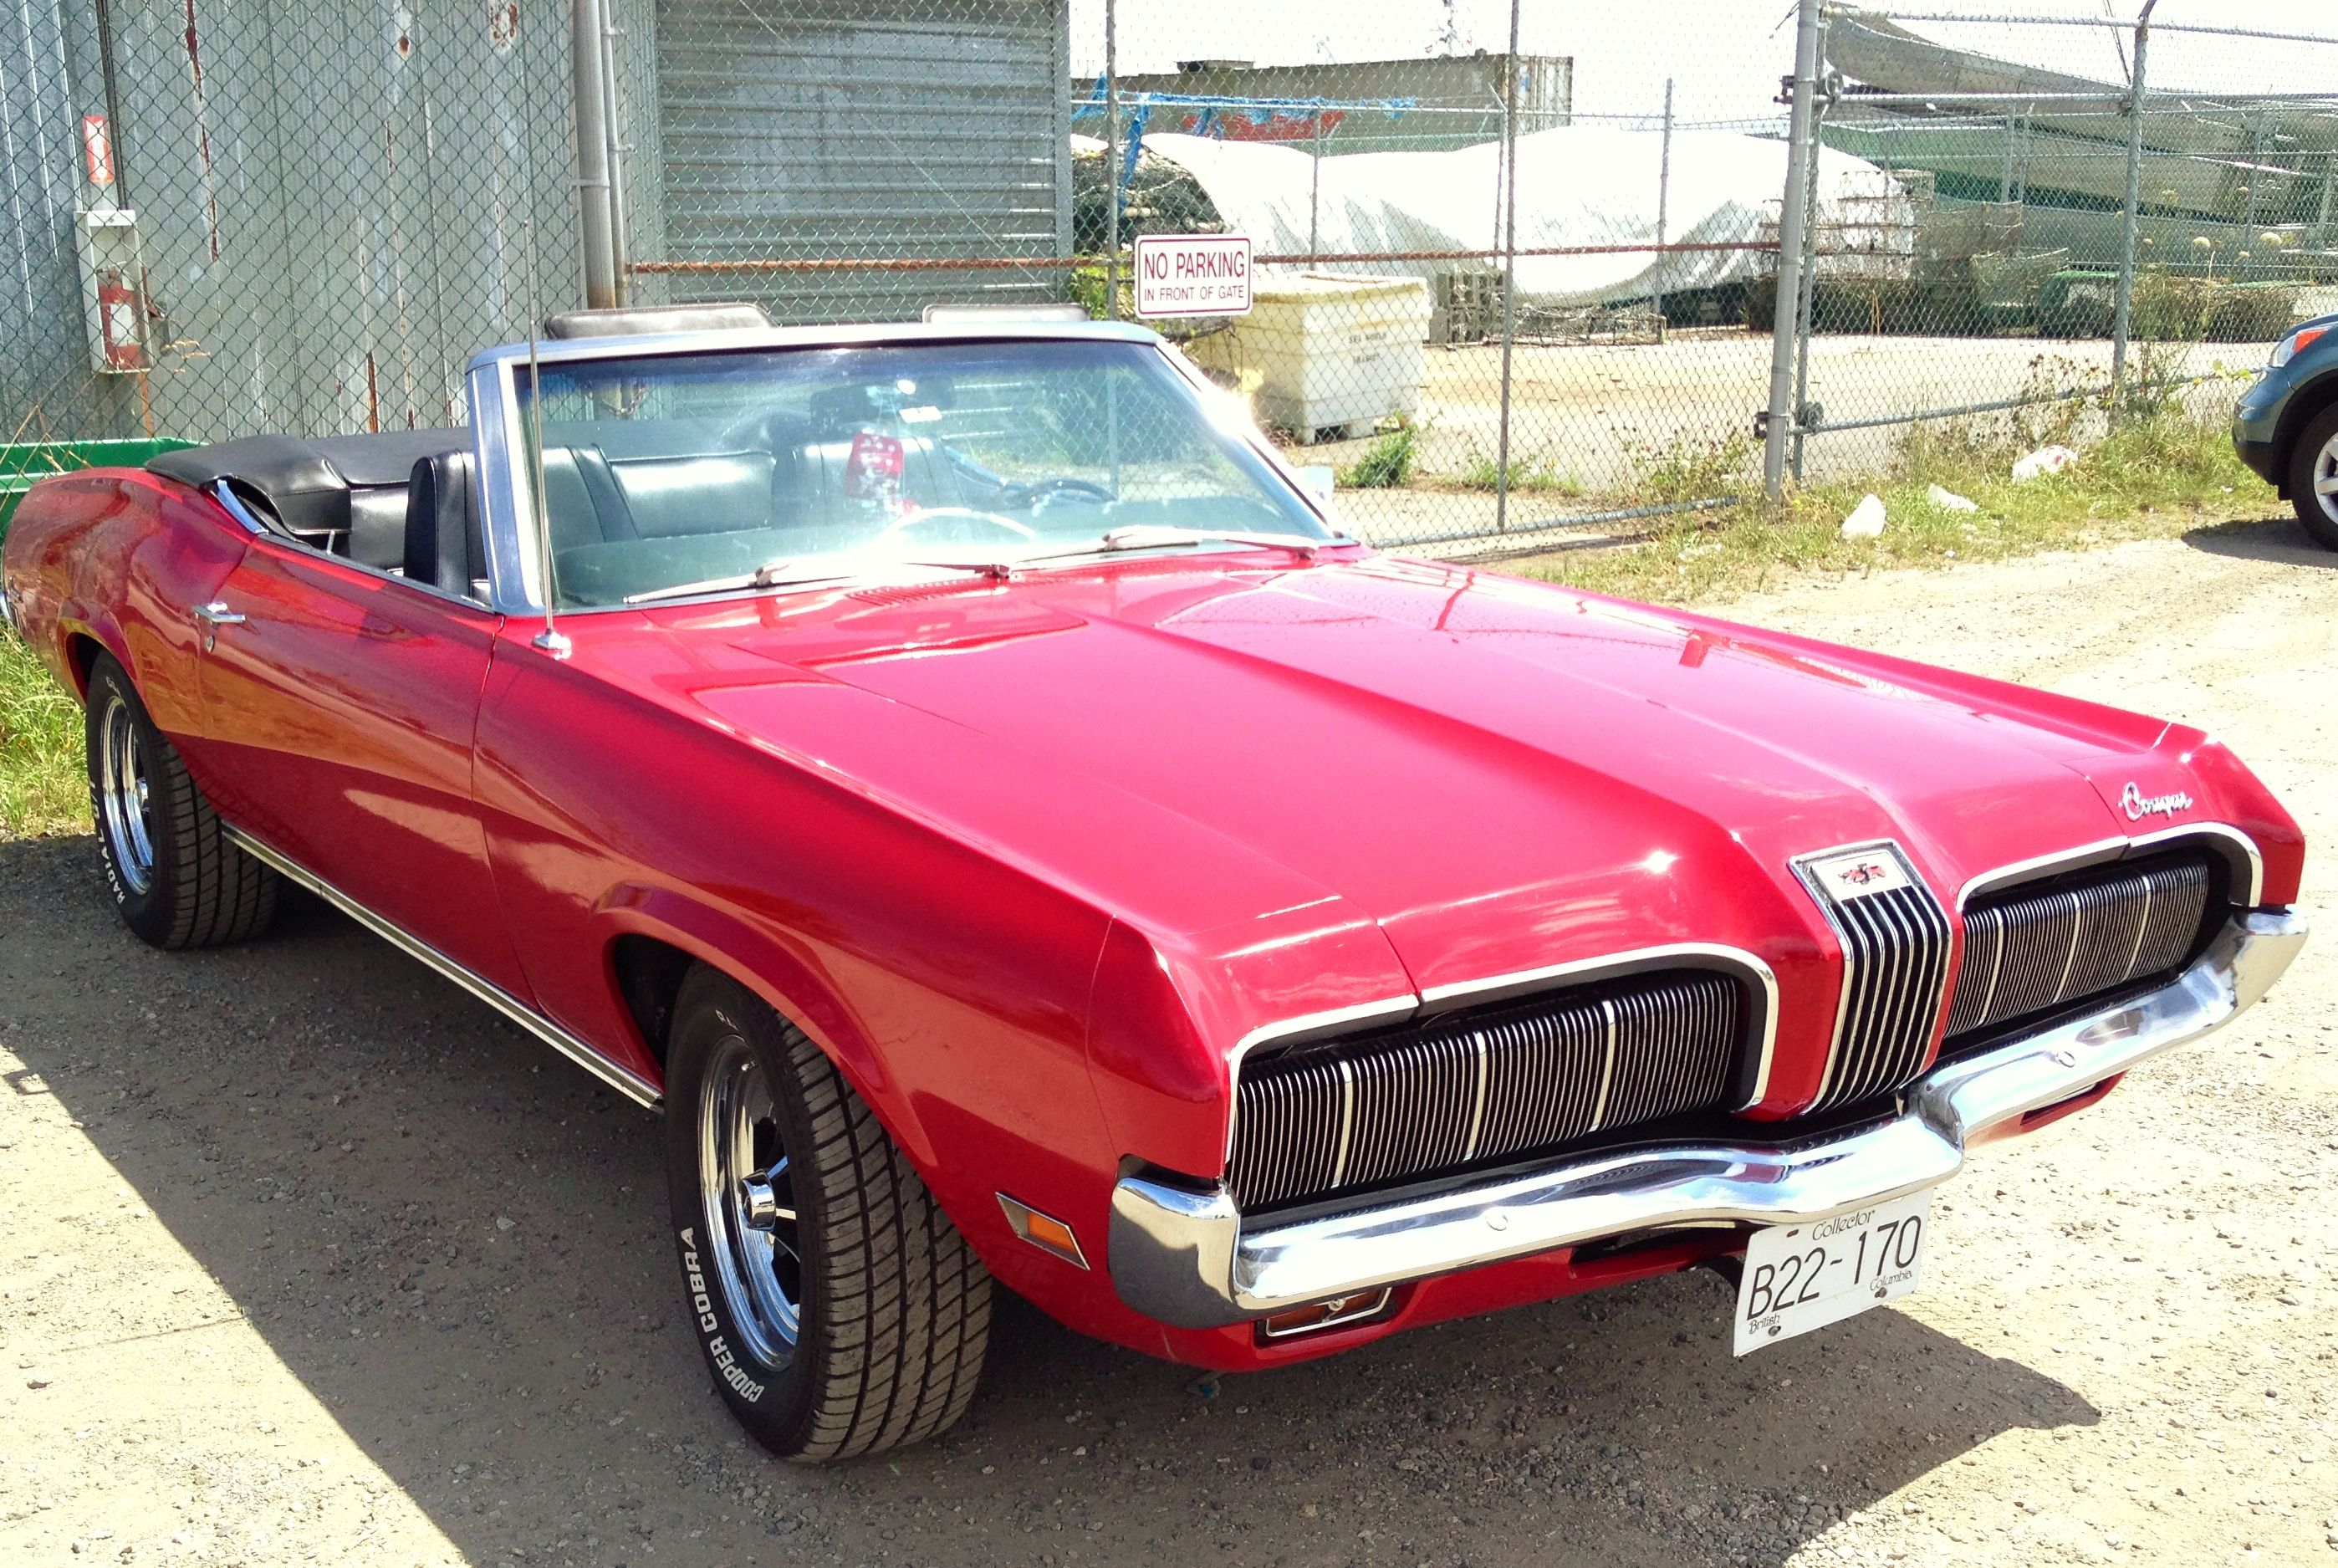 S Mercury Cougar Love The S Pinterest Cars American